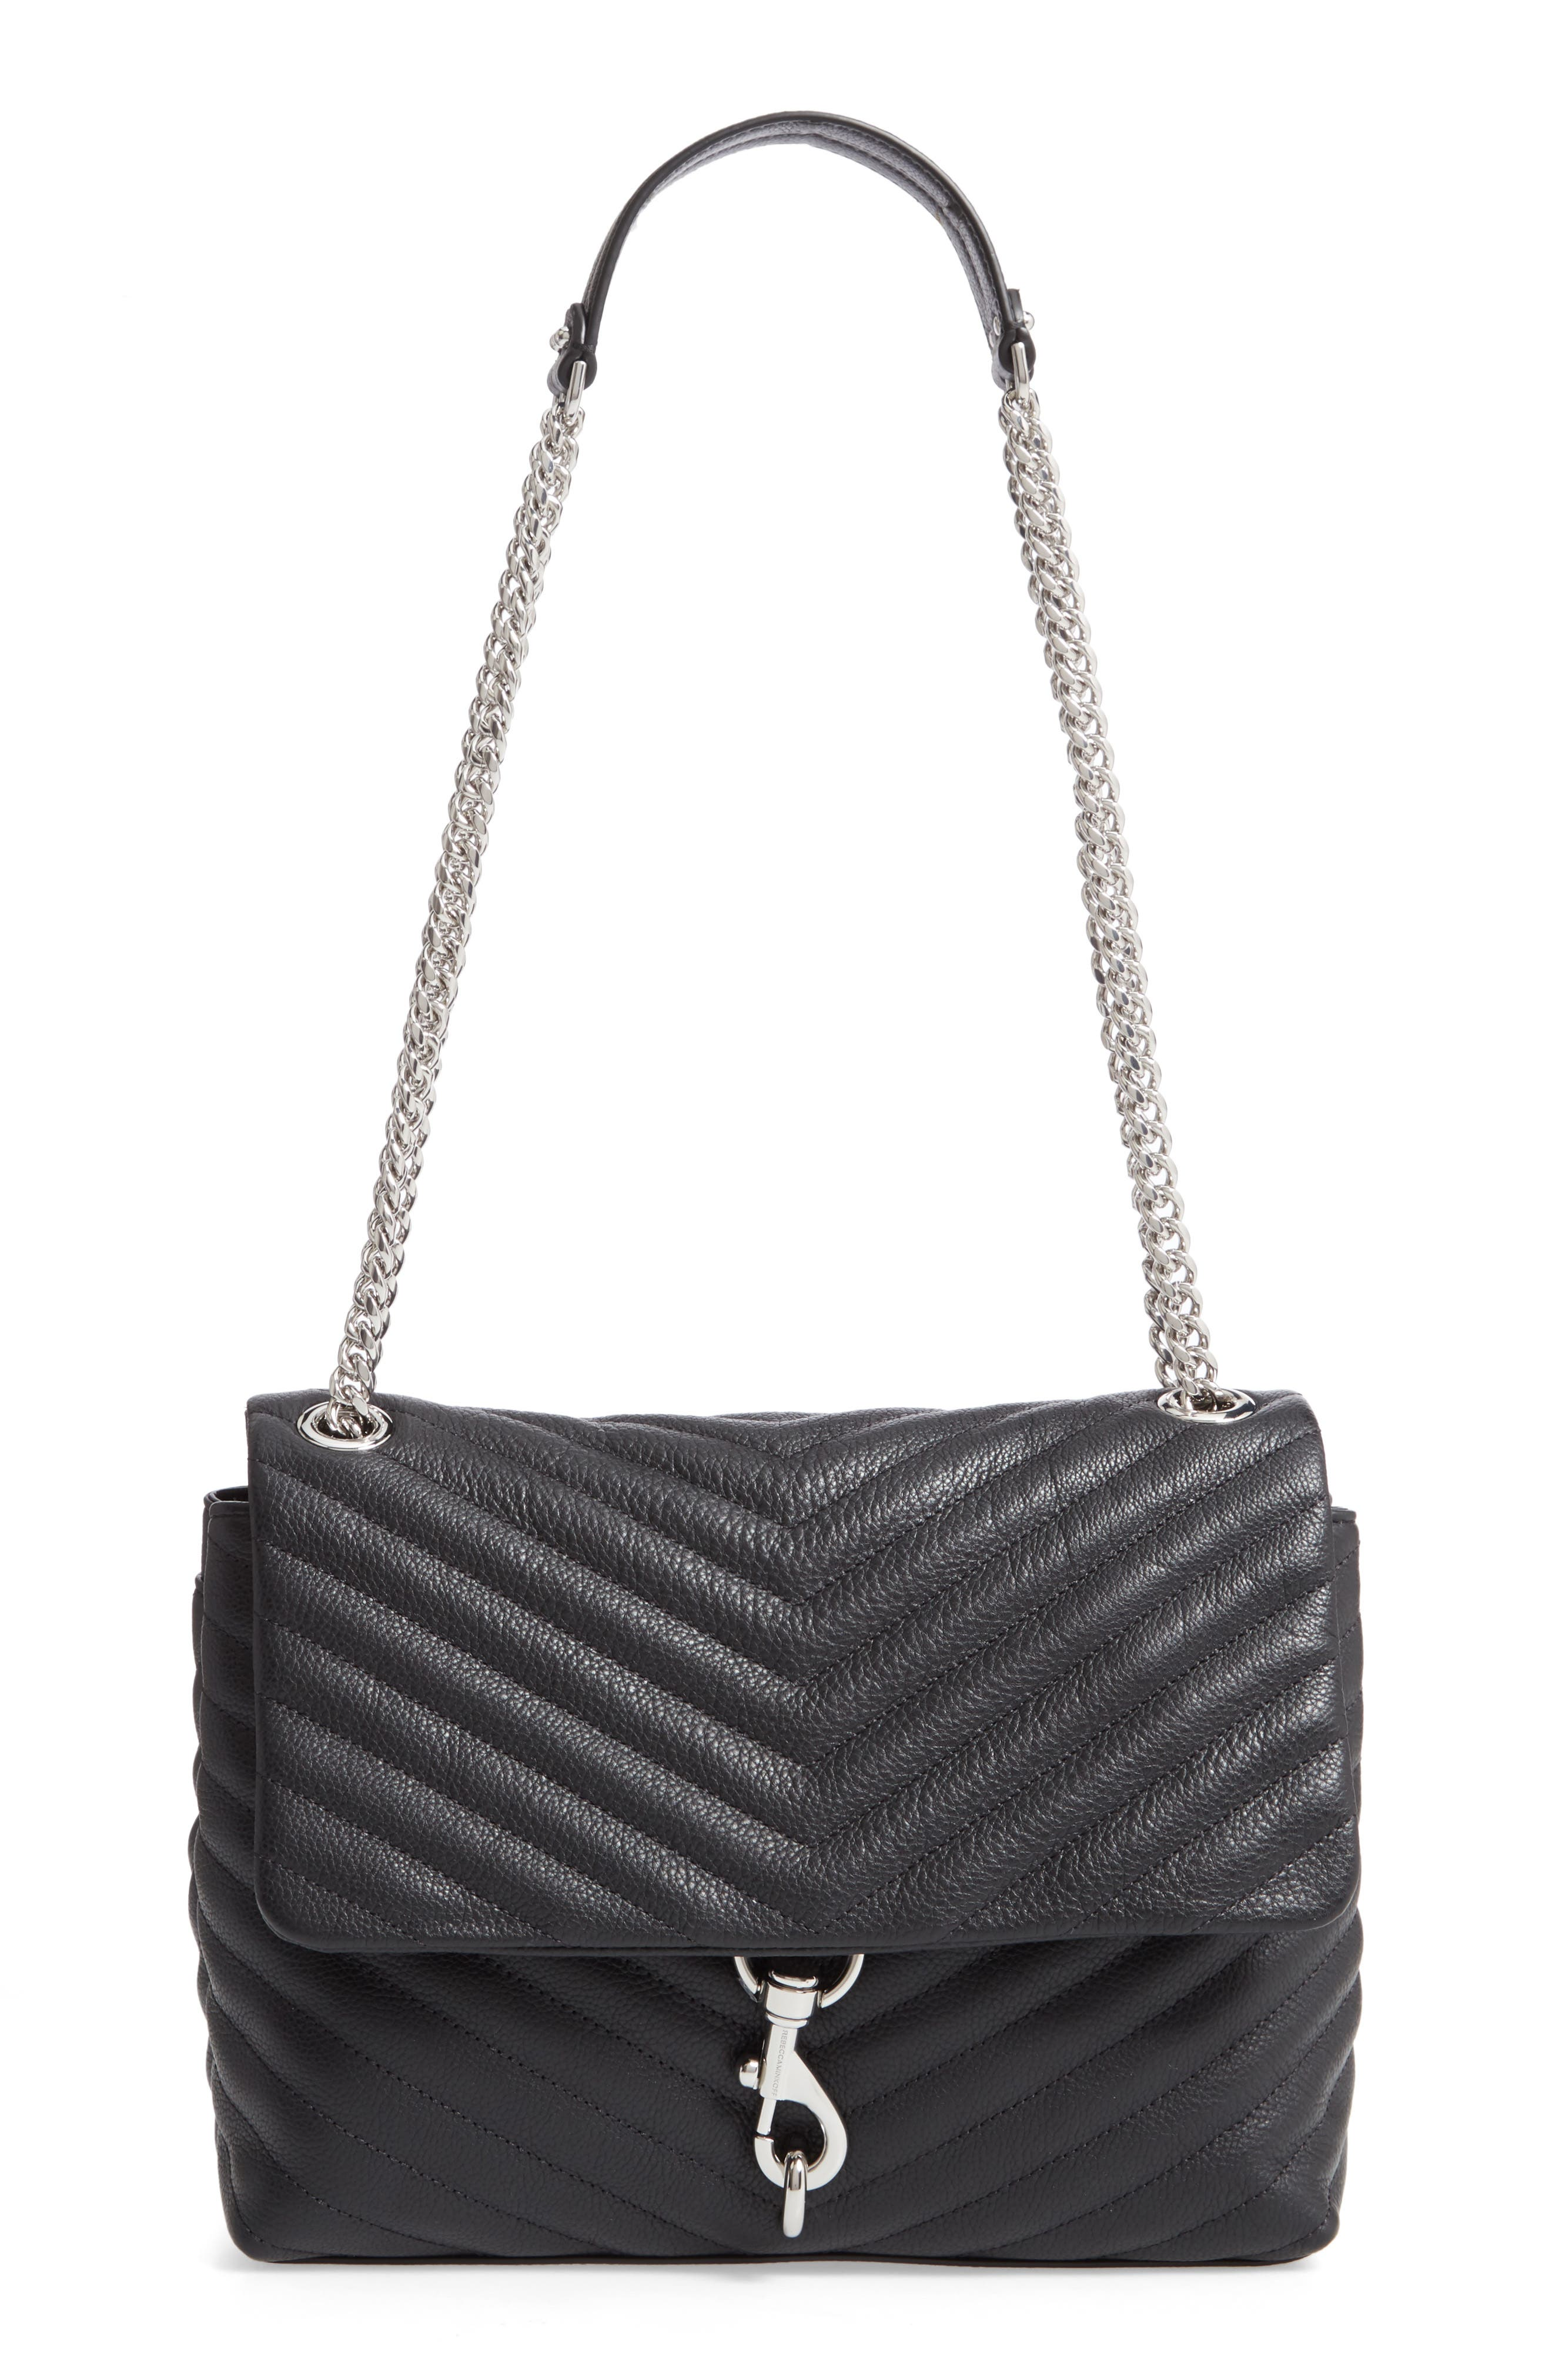 REBECCA MINKOFF, Edie Flap Quilted Leather Shoulder Bag, Main thumbnail 1, color, BLACK